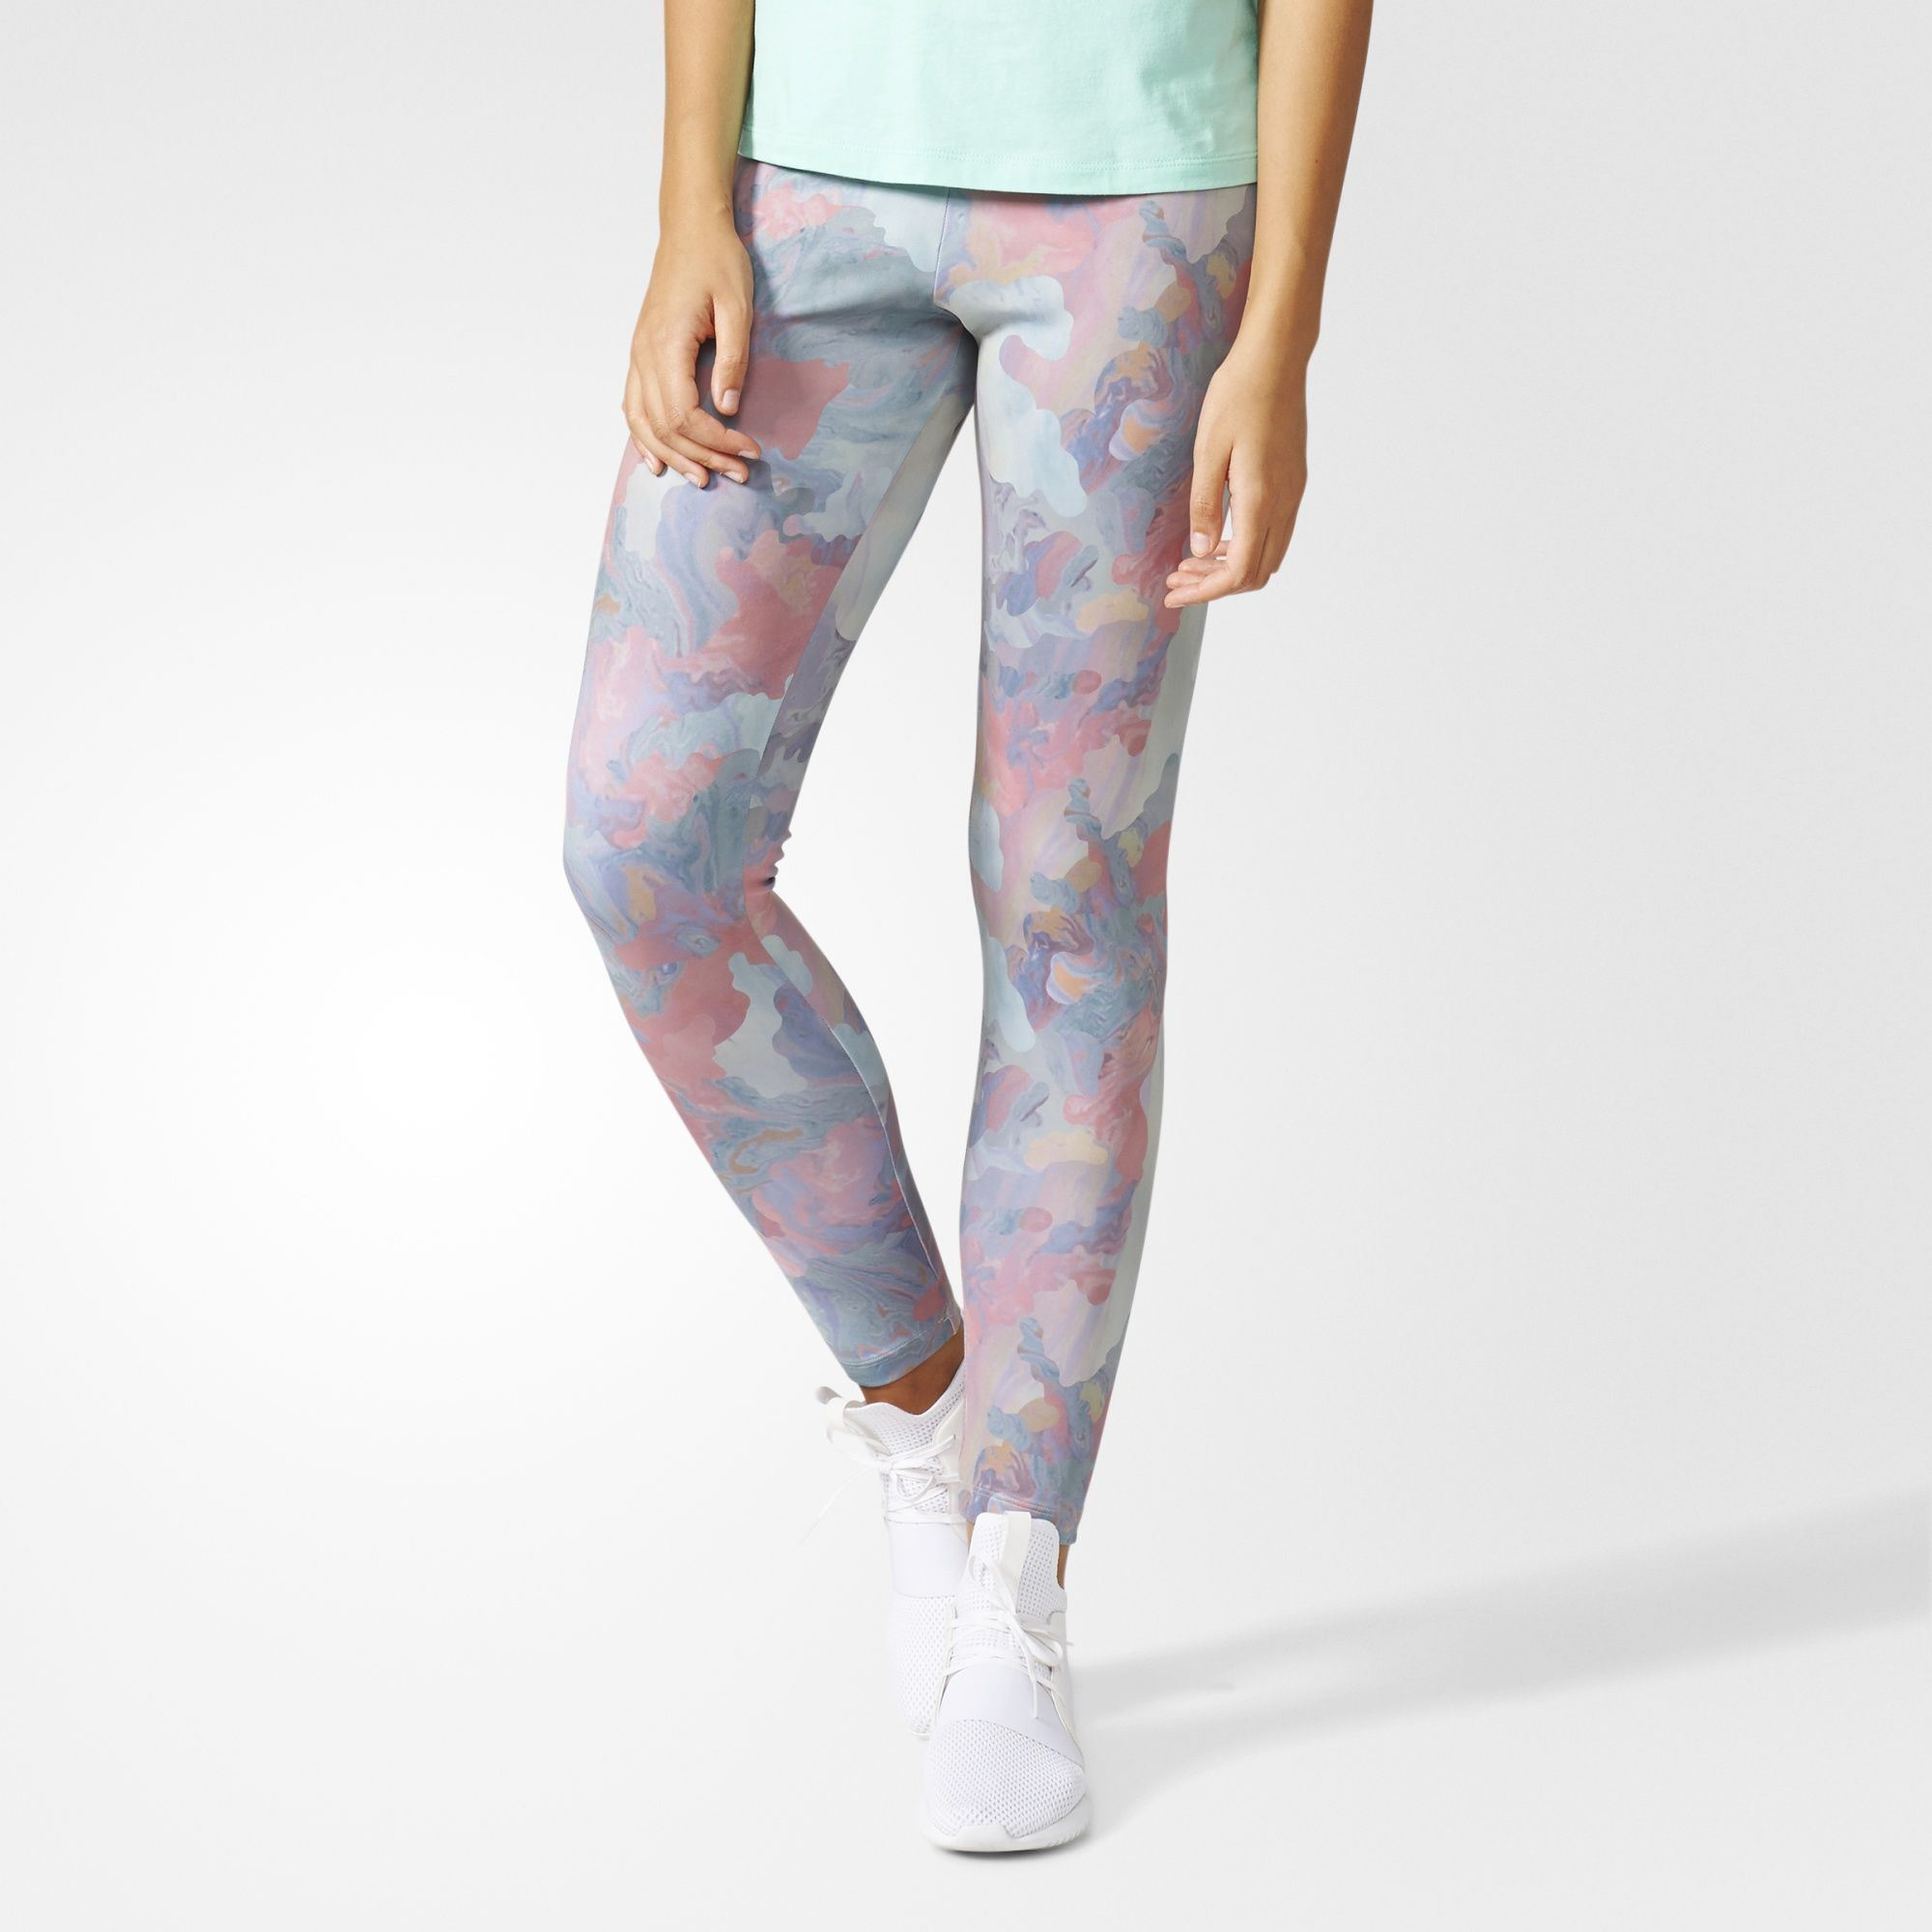 3025412867fd0 adidas Originals Womens Autumn Pastel Camo Trefoil Tight Leggings | BR6599.  All sizes listed are UK. See sizing tab below for conversions.